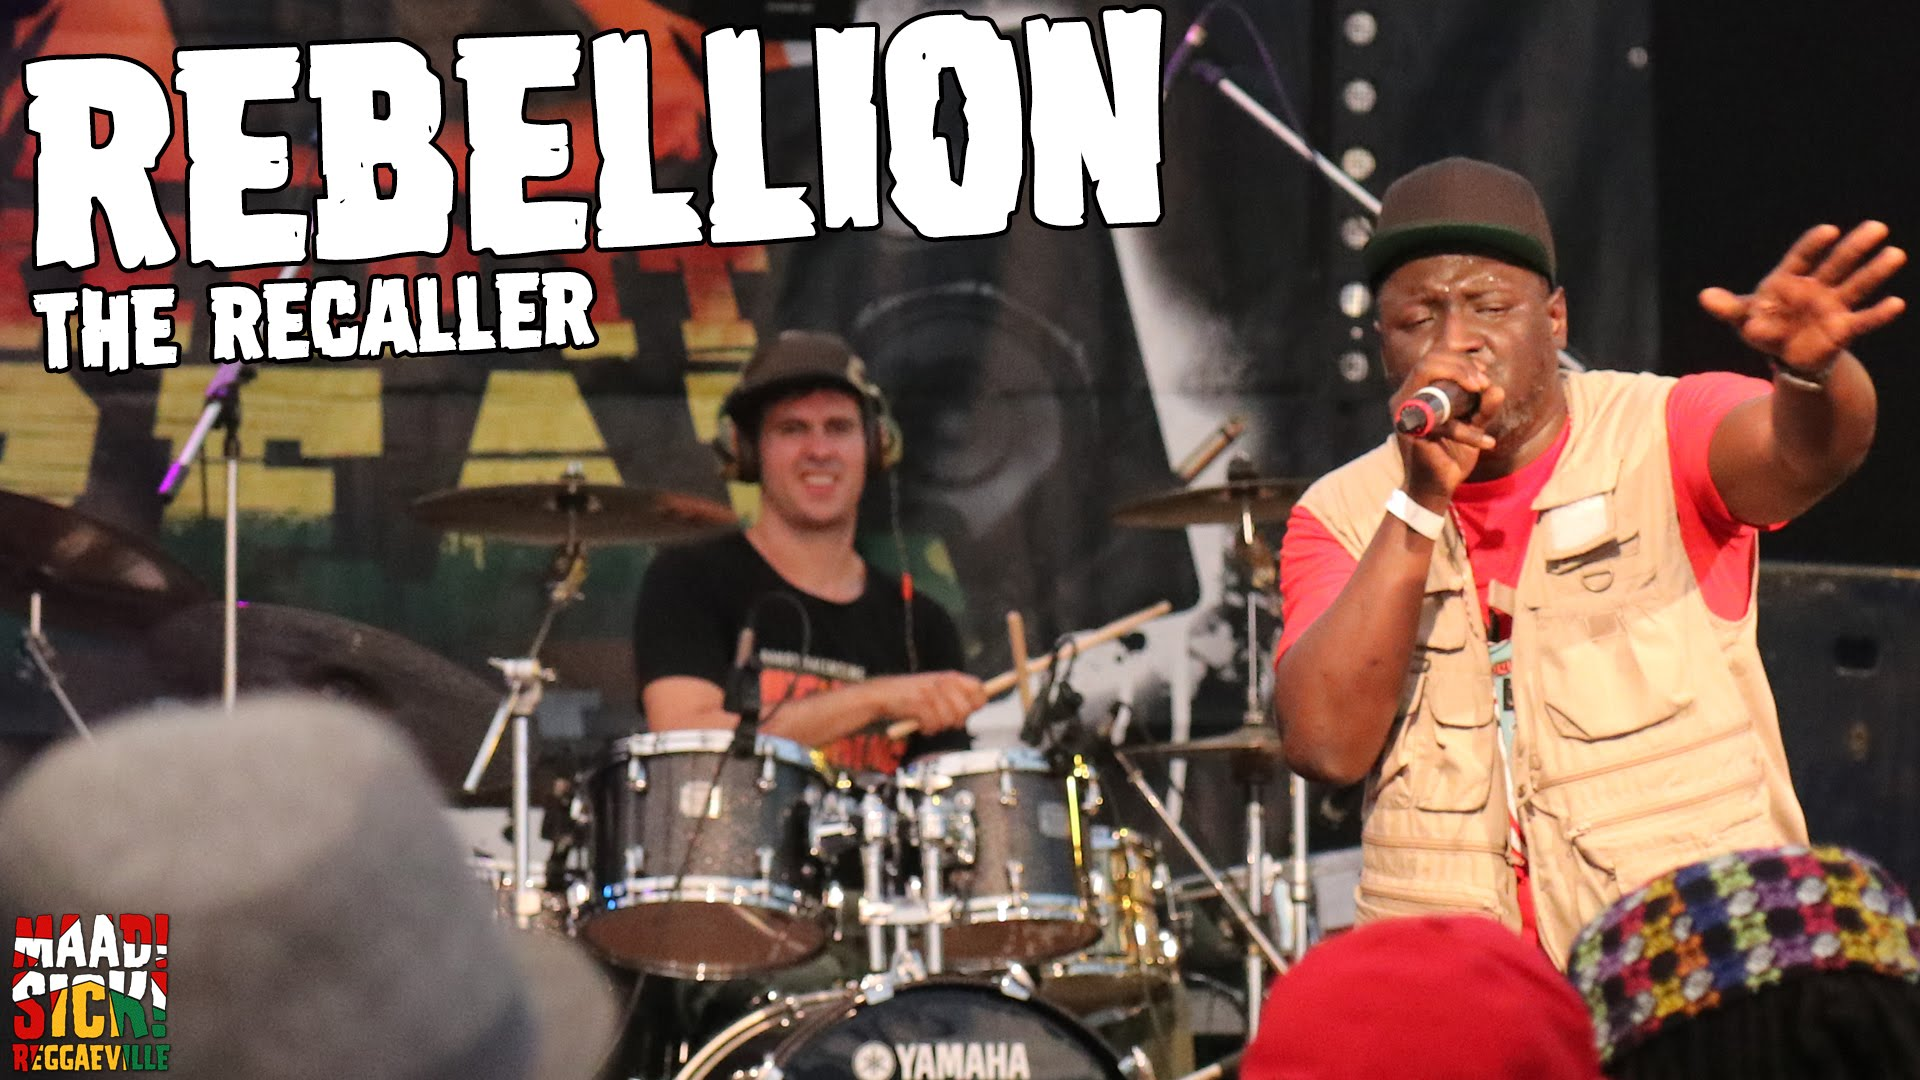 Rebellion The Recaller @ Keep It Real Jam 2016 [8/13/2016]